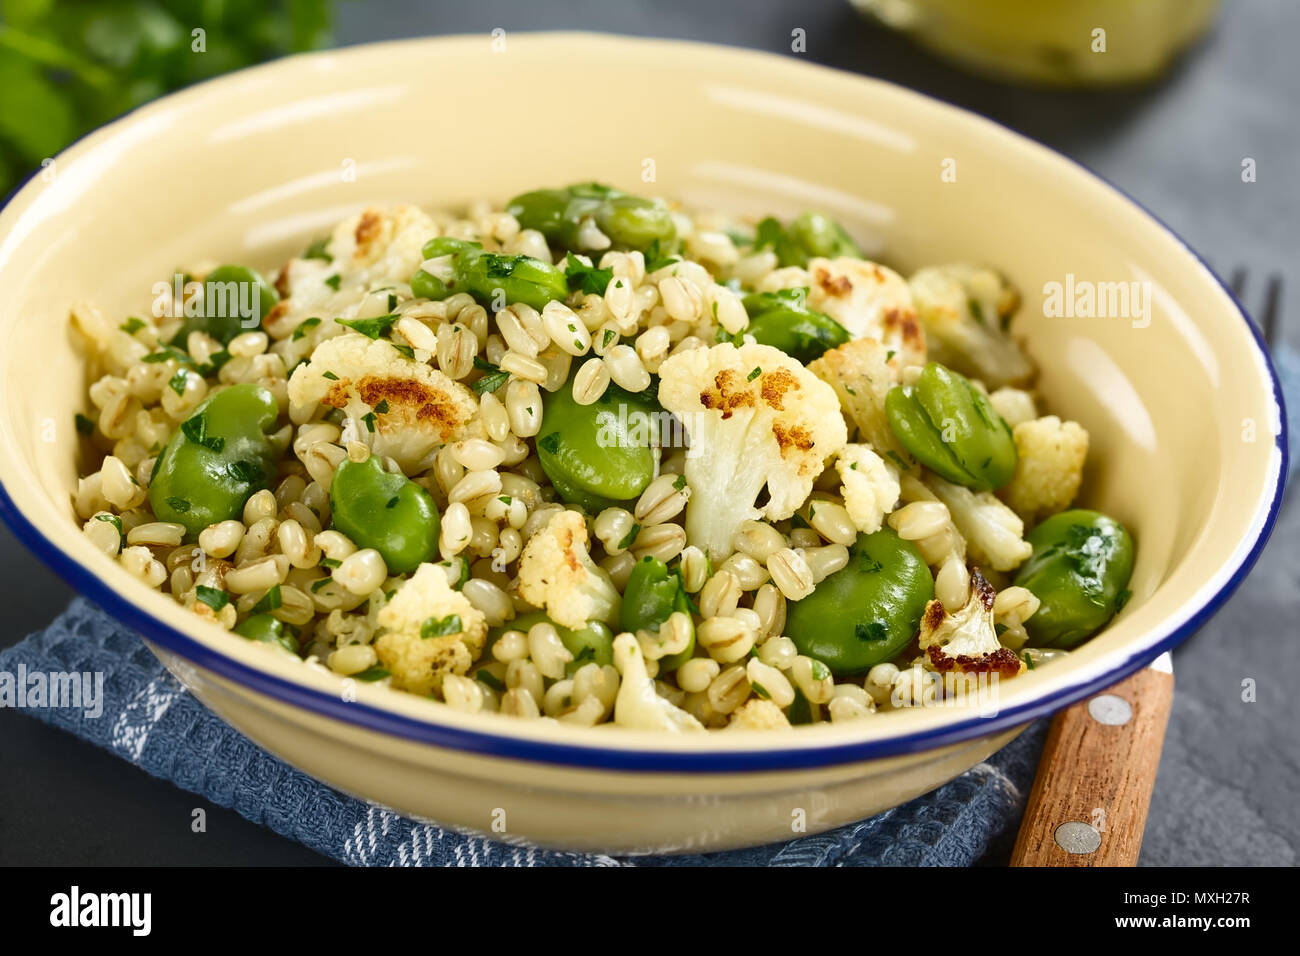 Watch Barley Salad with Chickpeas, Fava Beans Peas video